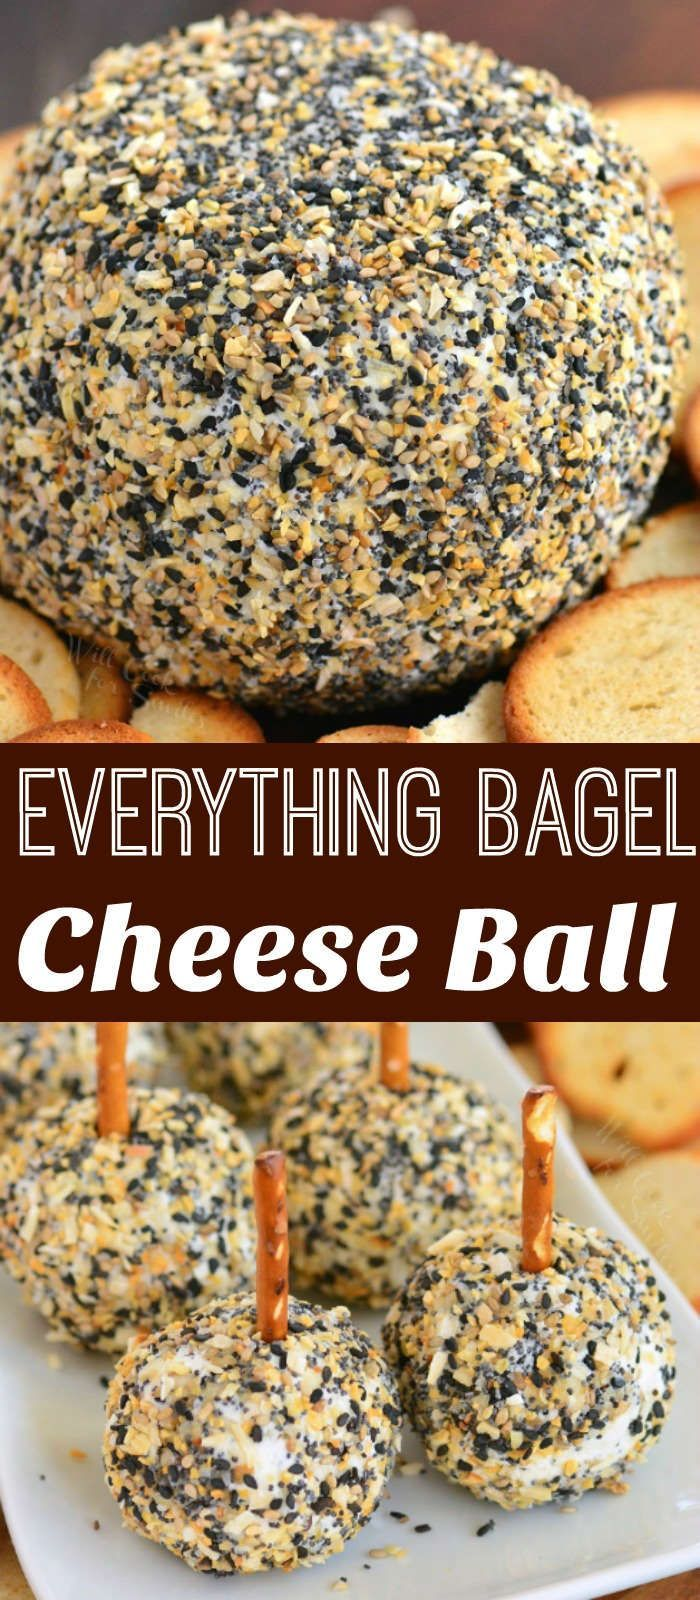 Photo of Everything Bagel Cheese Ball